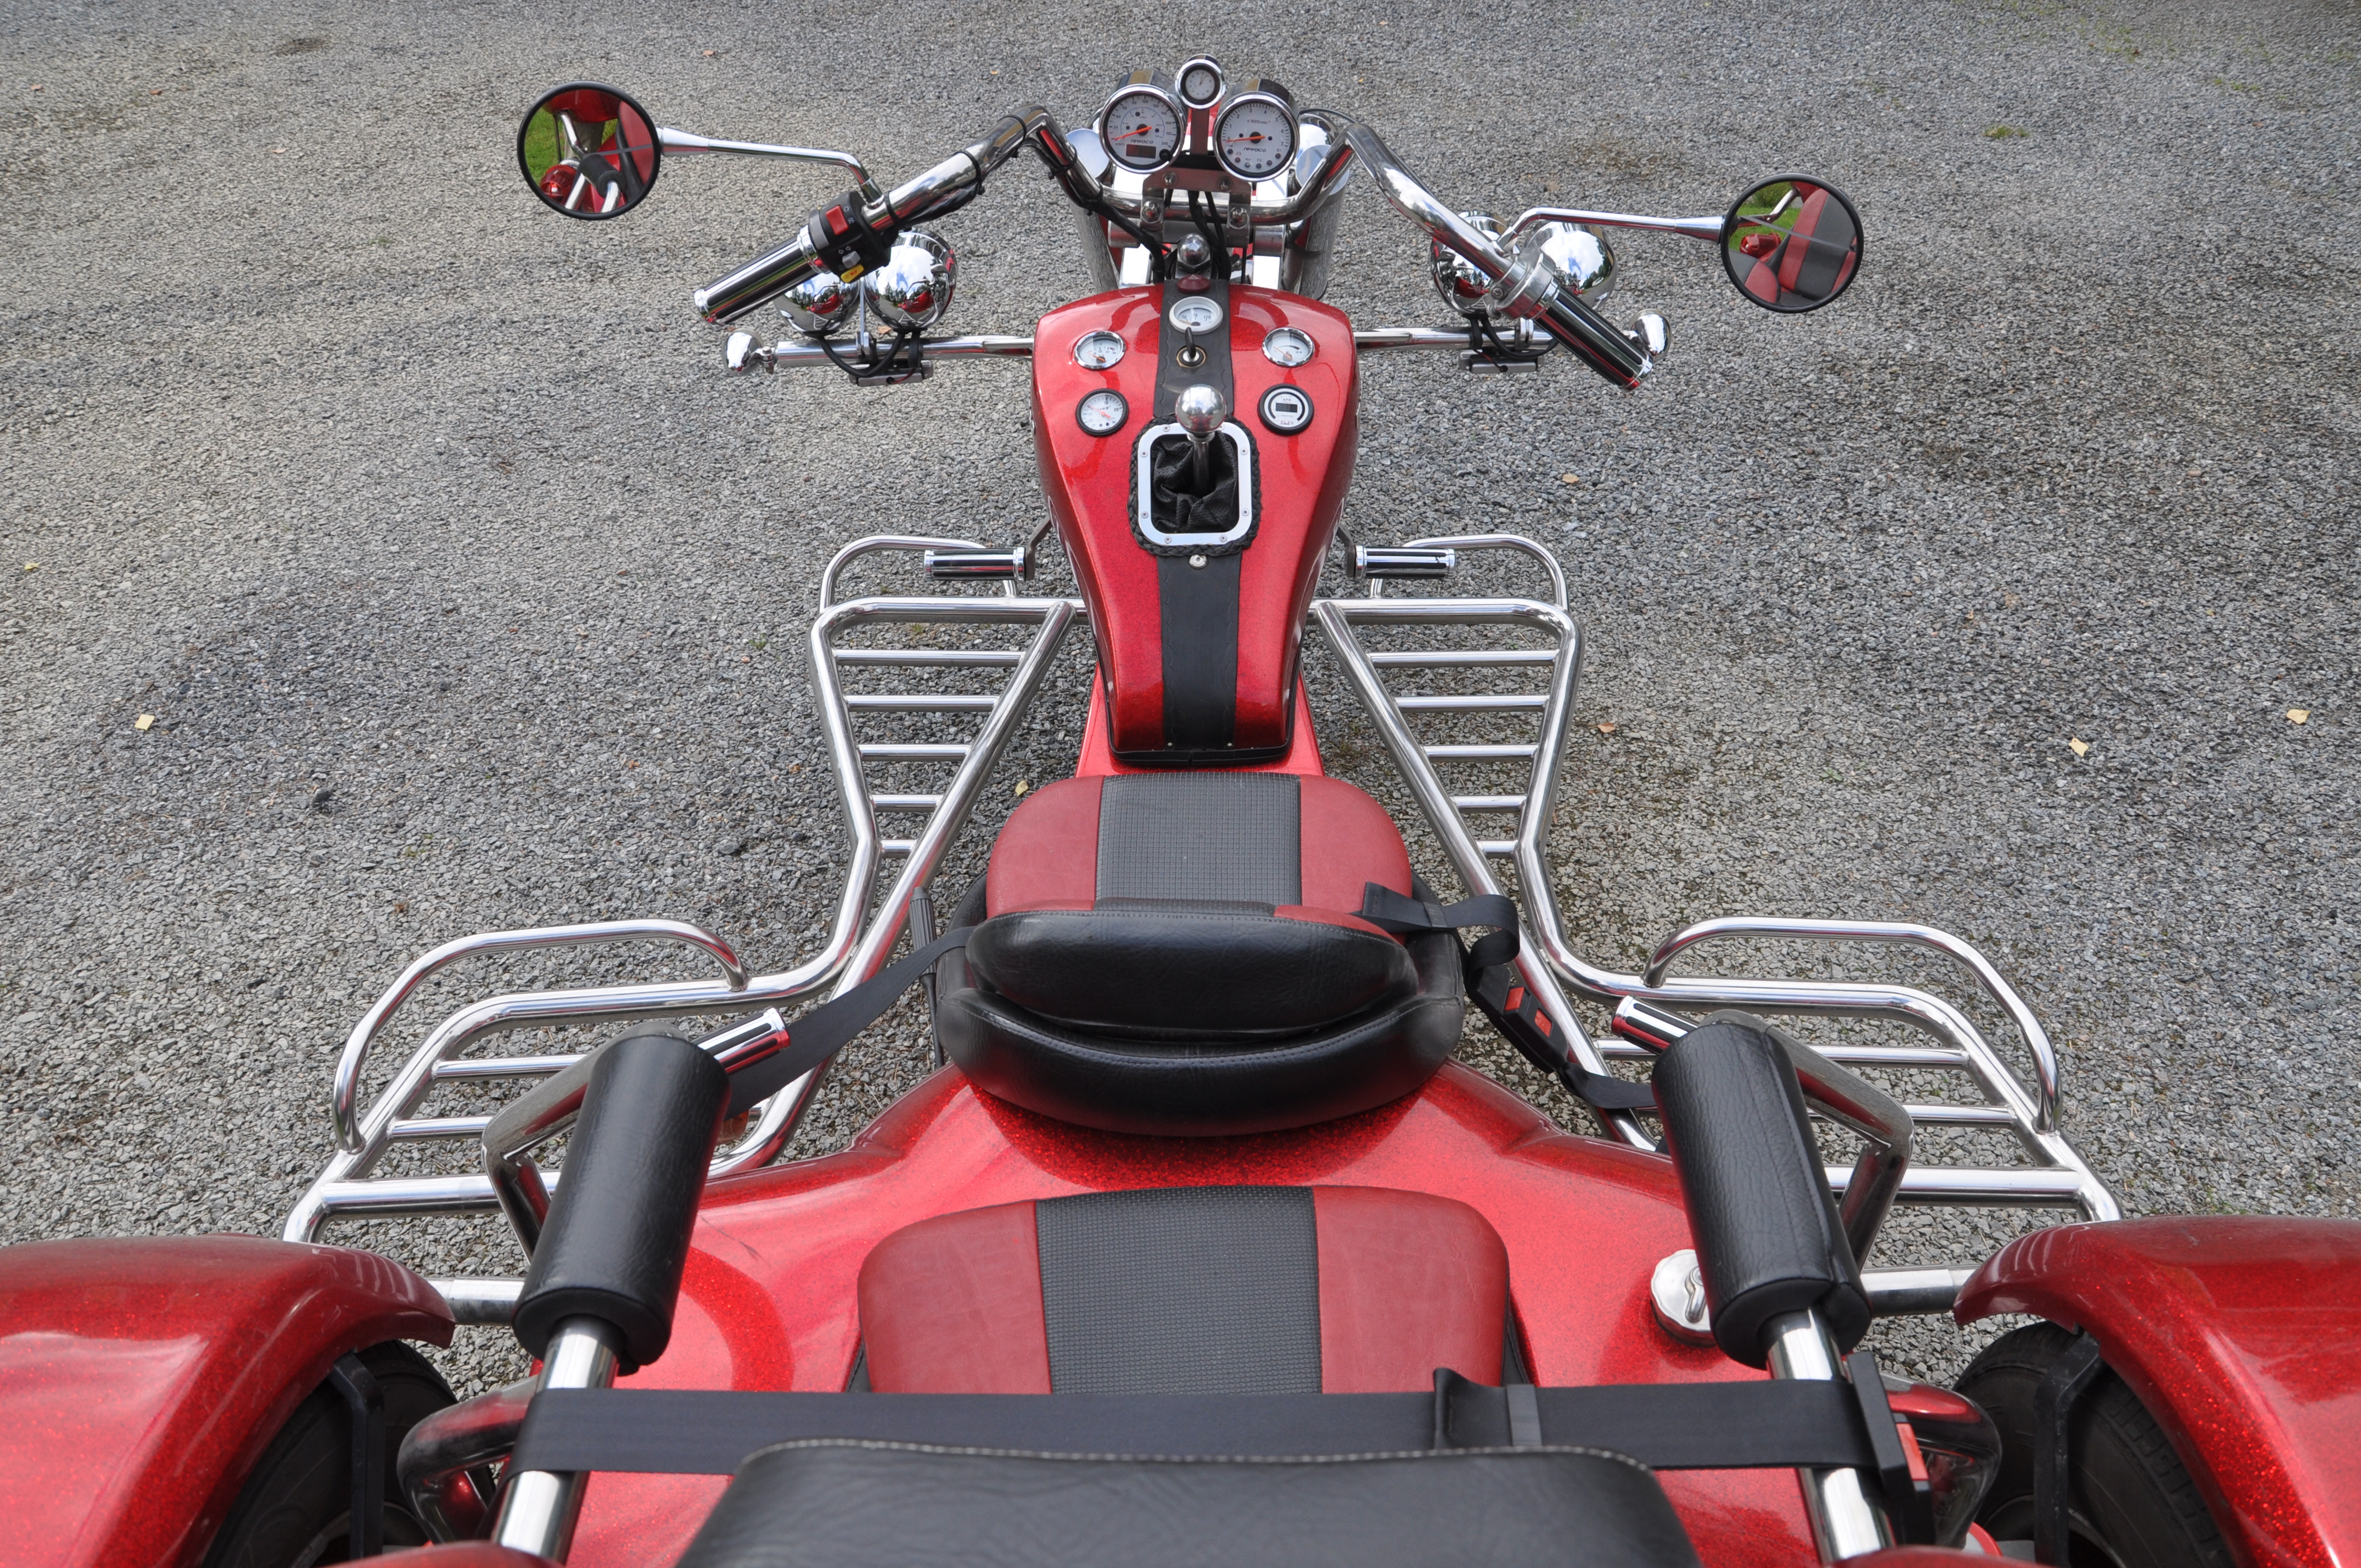 kart vesterbotten Rewaco Trike   PS Auction kart vesterbotten